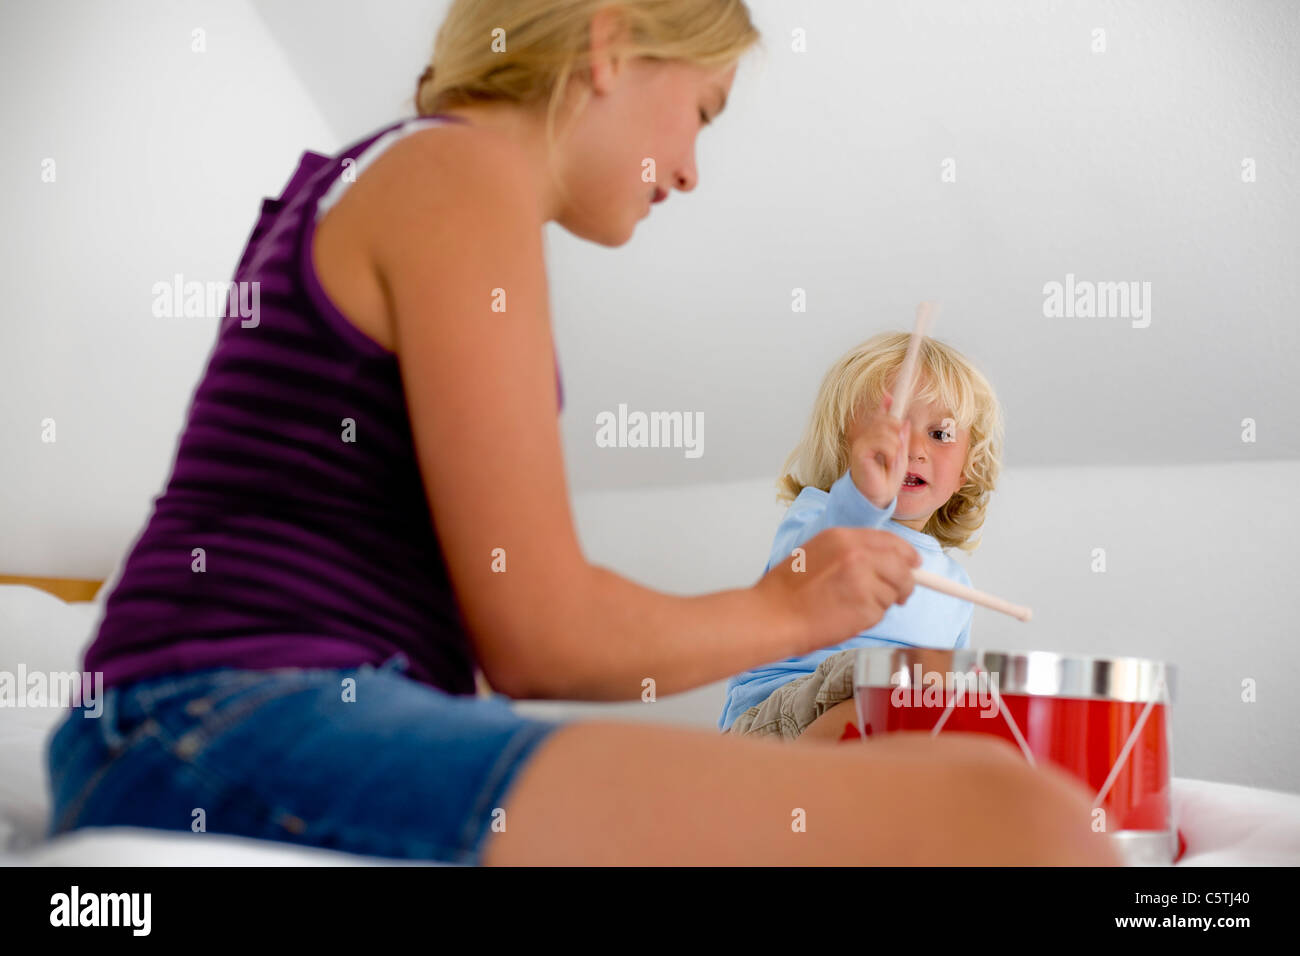 Germany, Ammersee, Diessen, Girl (12-13) and boy (2-3) playing with drums - Stock Image